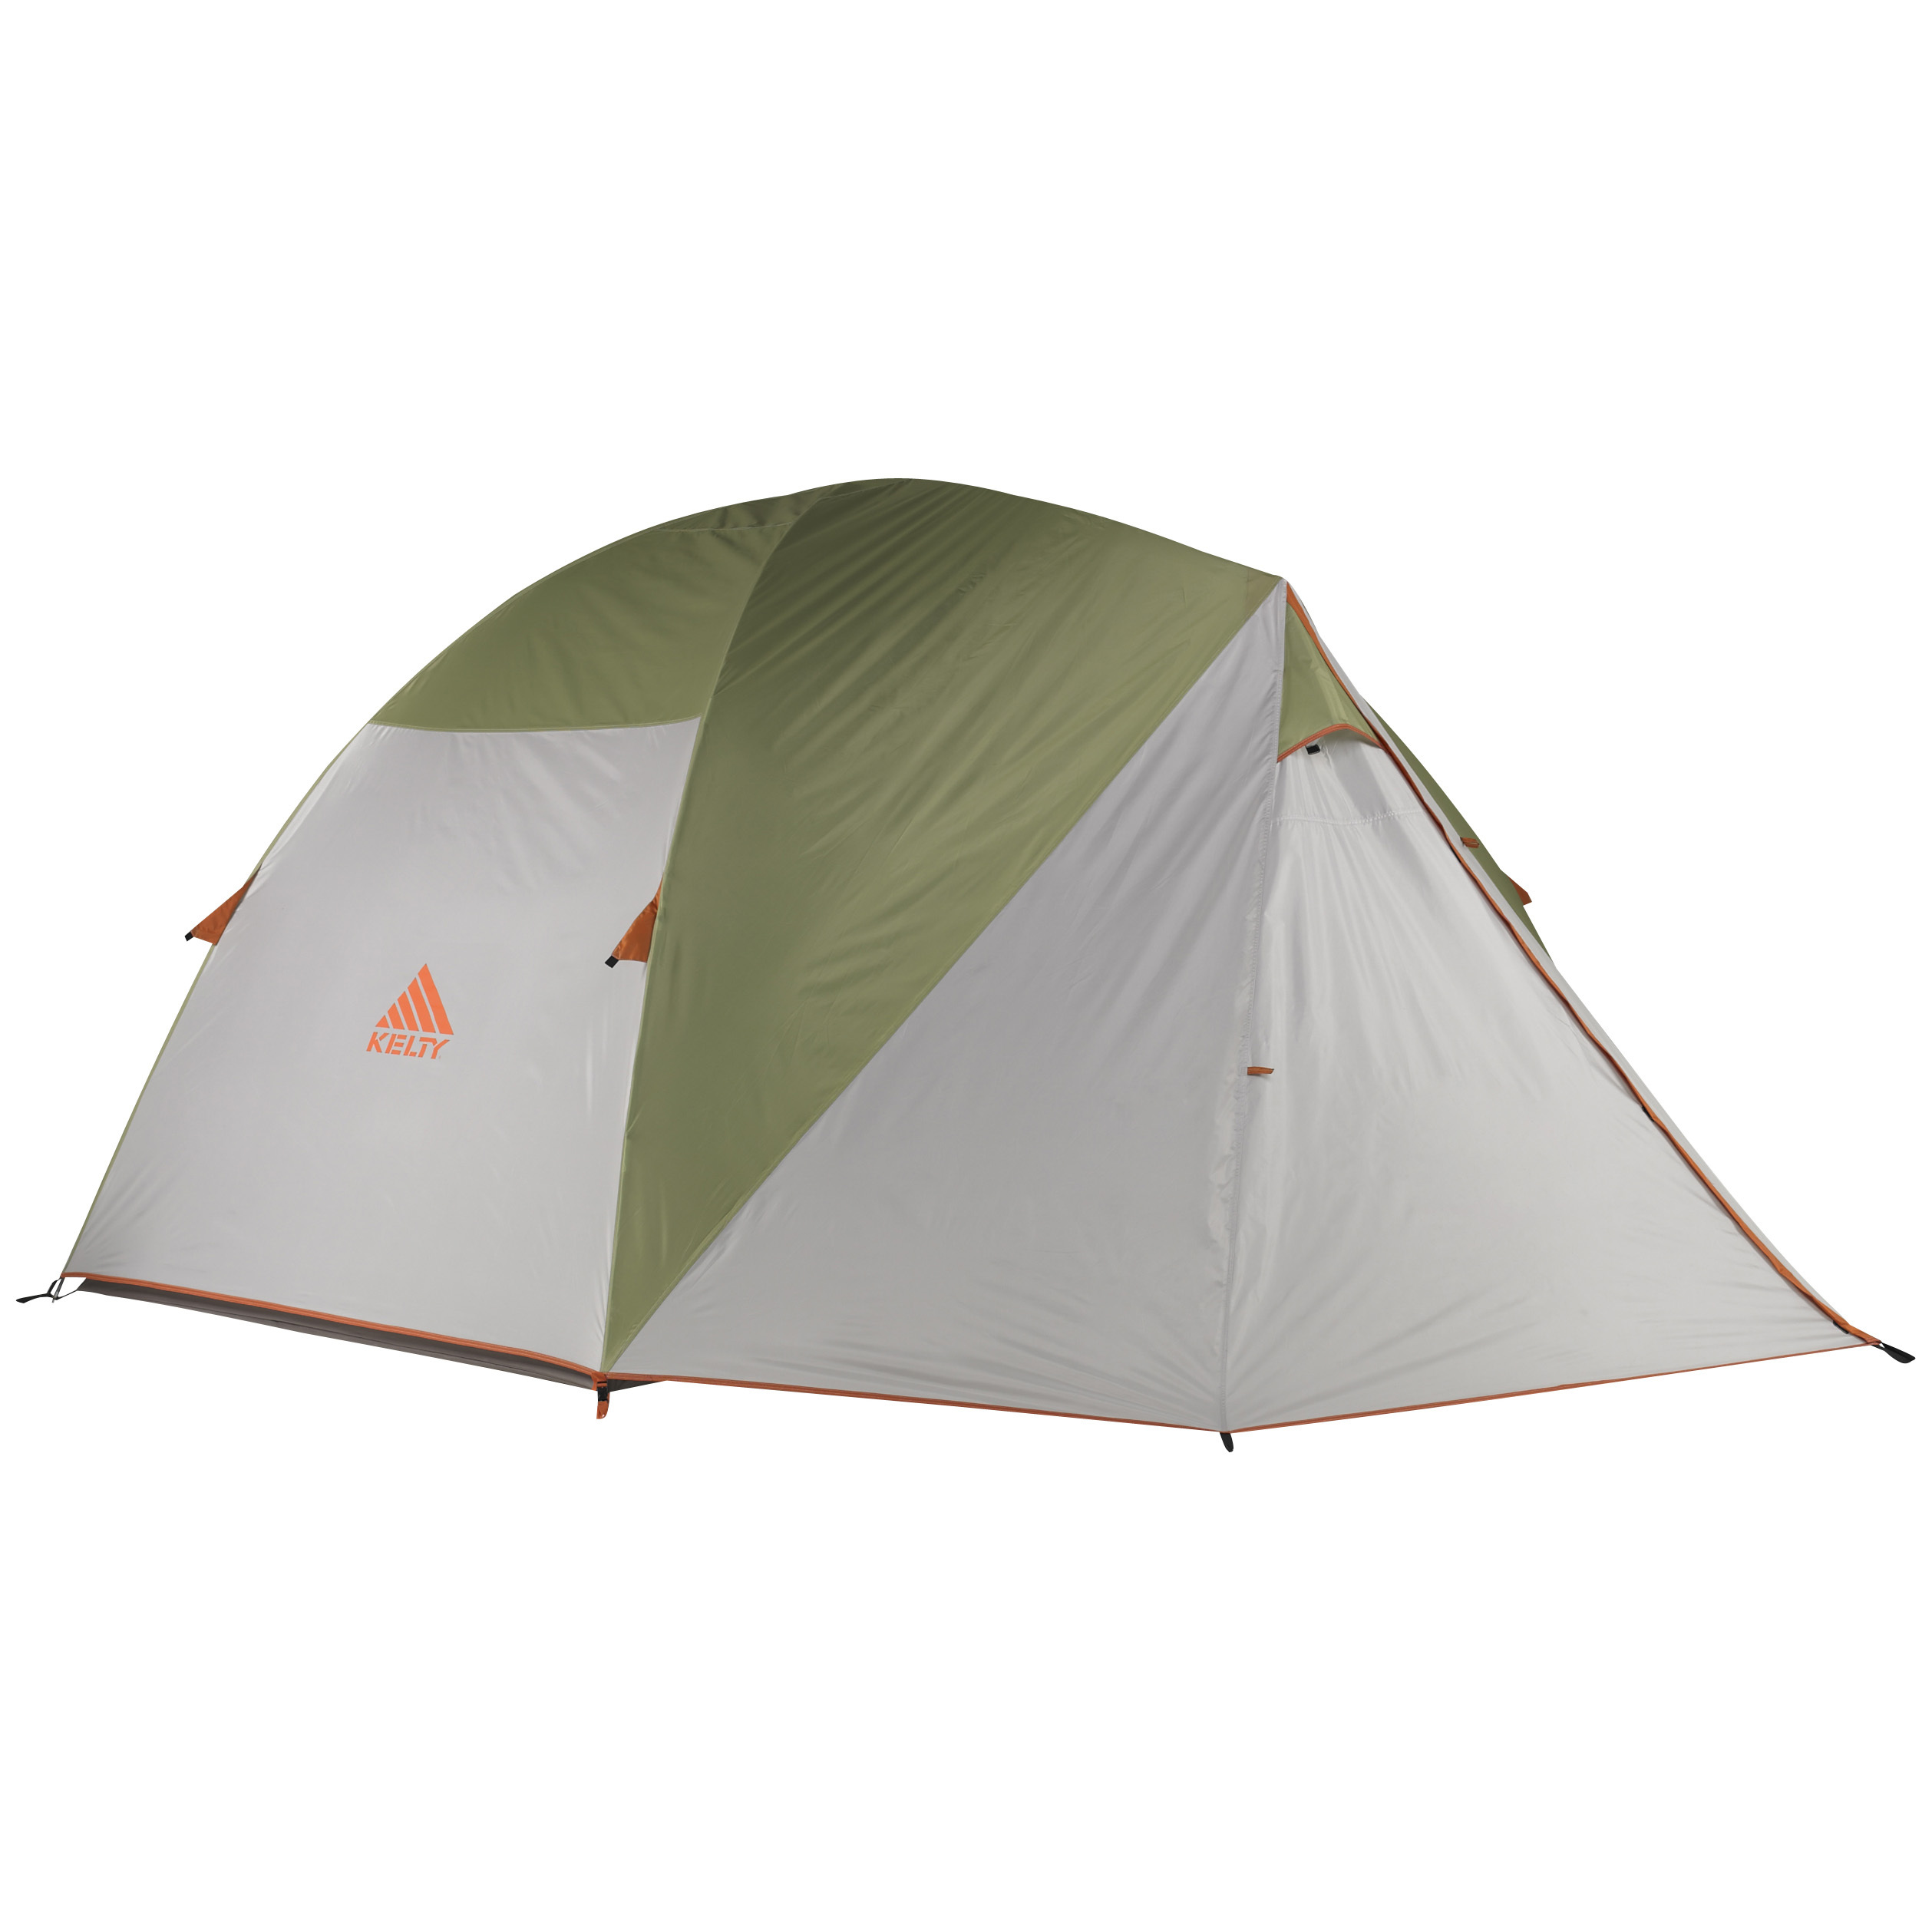 "Kelty Acadia 6 Tent. Incredibly durable, easy to set up and large enough to sleep the whole crew! Camp comfortably! Constructed of a lightweight, 68-denier polyester, this Kelty Acadia 6 Tent is WATERPROOF and can stand up to harsh weather. Its large 120 x 96 x 74""h. size sleeps up to 6 people and the 2 attached vestibules are great for storing extra gear or hanging up wet and muddy clothes. And it's incredibly easy to set up with the clip and pole sleeve design. Plus, the no-see-um mesh wall panels and fly vents allow air to circulate, so it never gets too warm or stuffy inside. The 3-pole, double-door design is great for everything from back country camping to staying at your local campground.Features:1800mm 67-denier polyester construction for lightweight durability 3-season freestanding design 6 person capacity 2 wrapped fiberglass poles and 1 DAC hybrid ridge pole Clip and pole sleeve construction 1800mm 75-denier polyester floor and taped floor seams lock out water No-see-um mesh wall panels help circulate air Internal side pockets for easy organization 2 doors for easy in / out Measures 120 x 96 x 74""h., weighs 14 lbs, 3 ozs. Fly features: 1800mm 75-denier polyester construction Taped seams keep water out Side-release tent / fly connection Fly vents for breathability Noiseless zipper pulls Guyout points for easy set up 2 vestibules for dirty shoes or other gear. - $279.99"